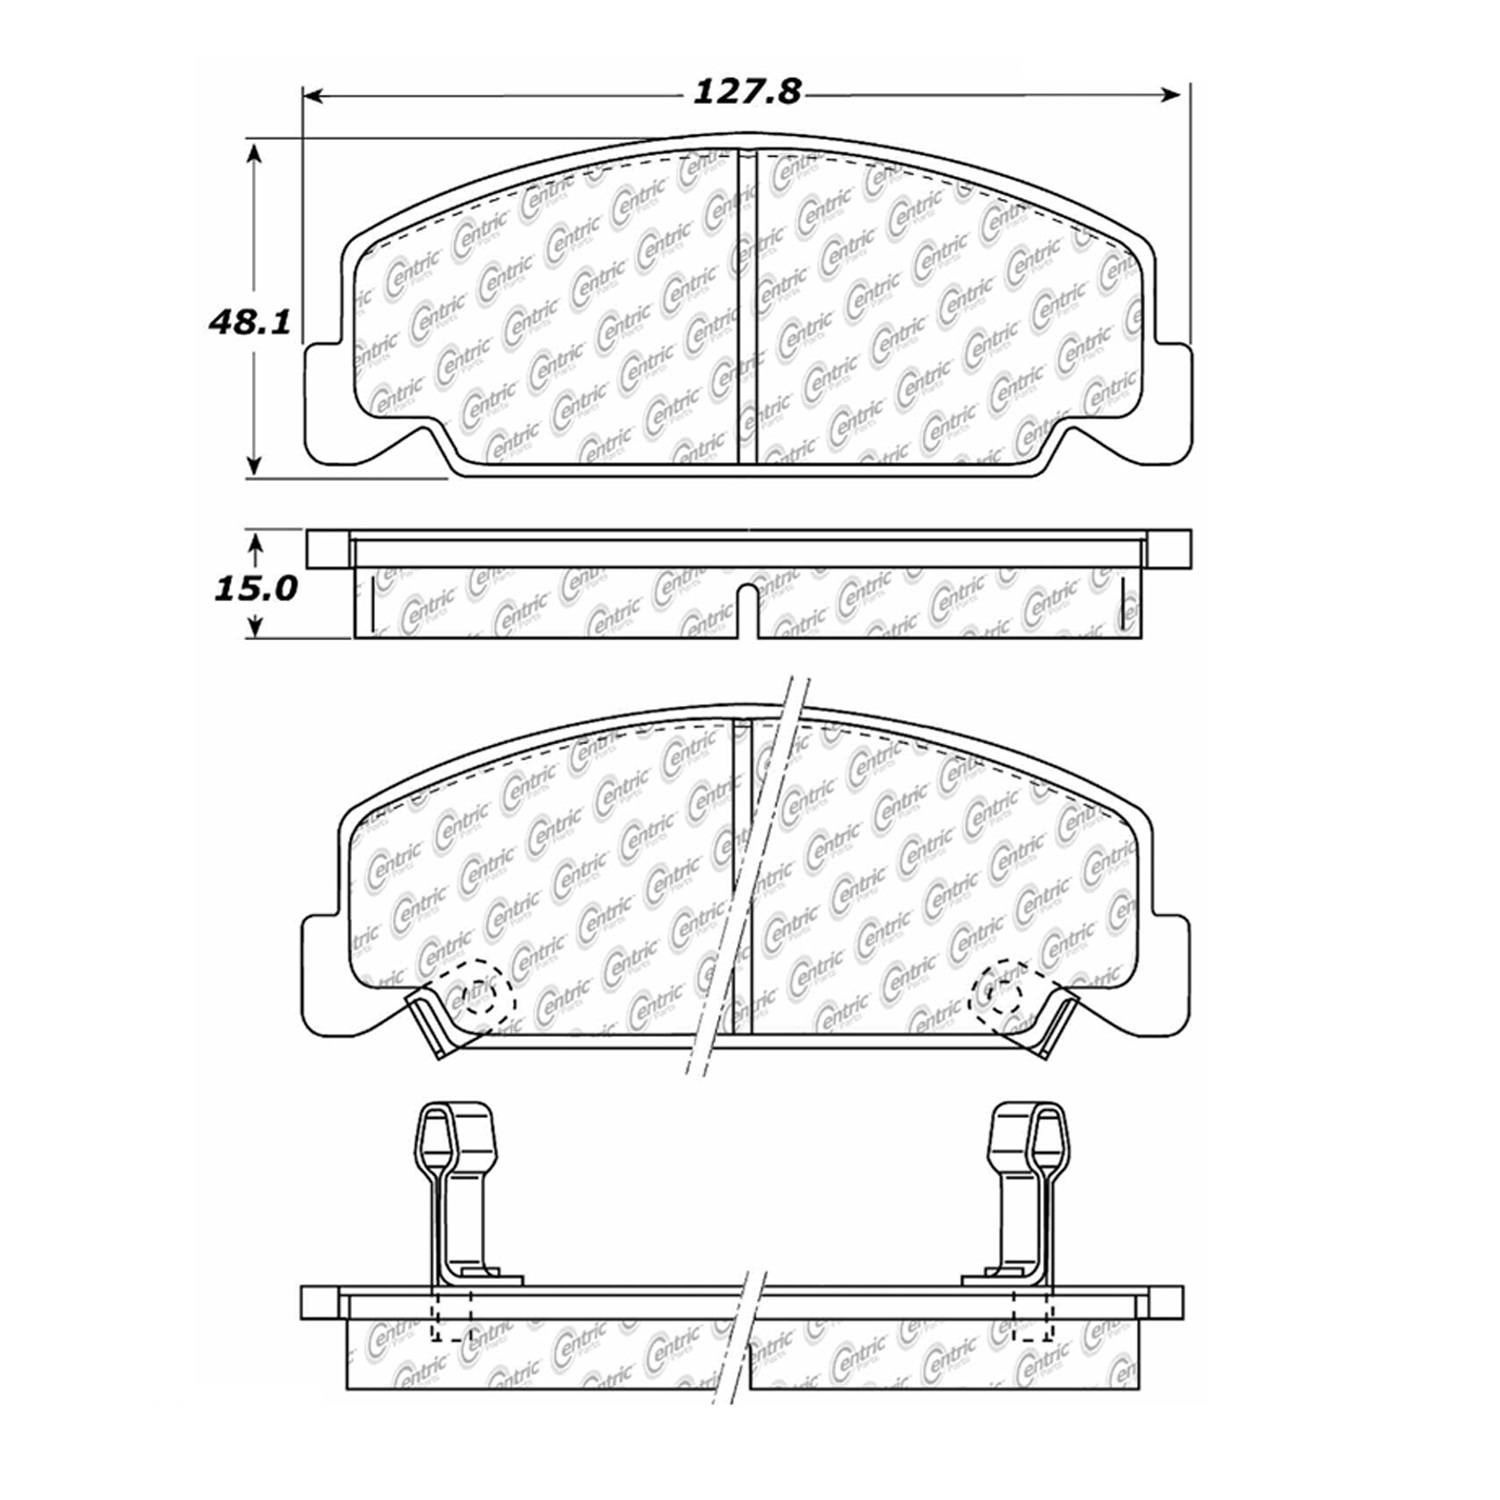 StopTech 104.02730 Disc Brake Pad Fits 90-00 Civic Civic del Sol CRX